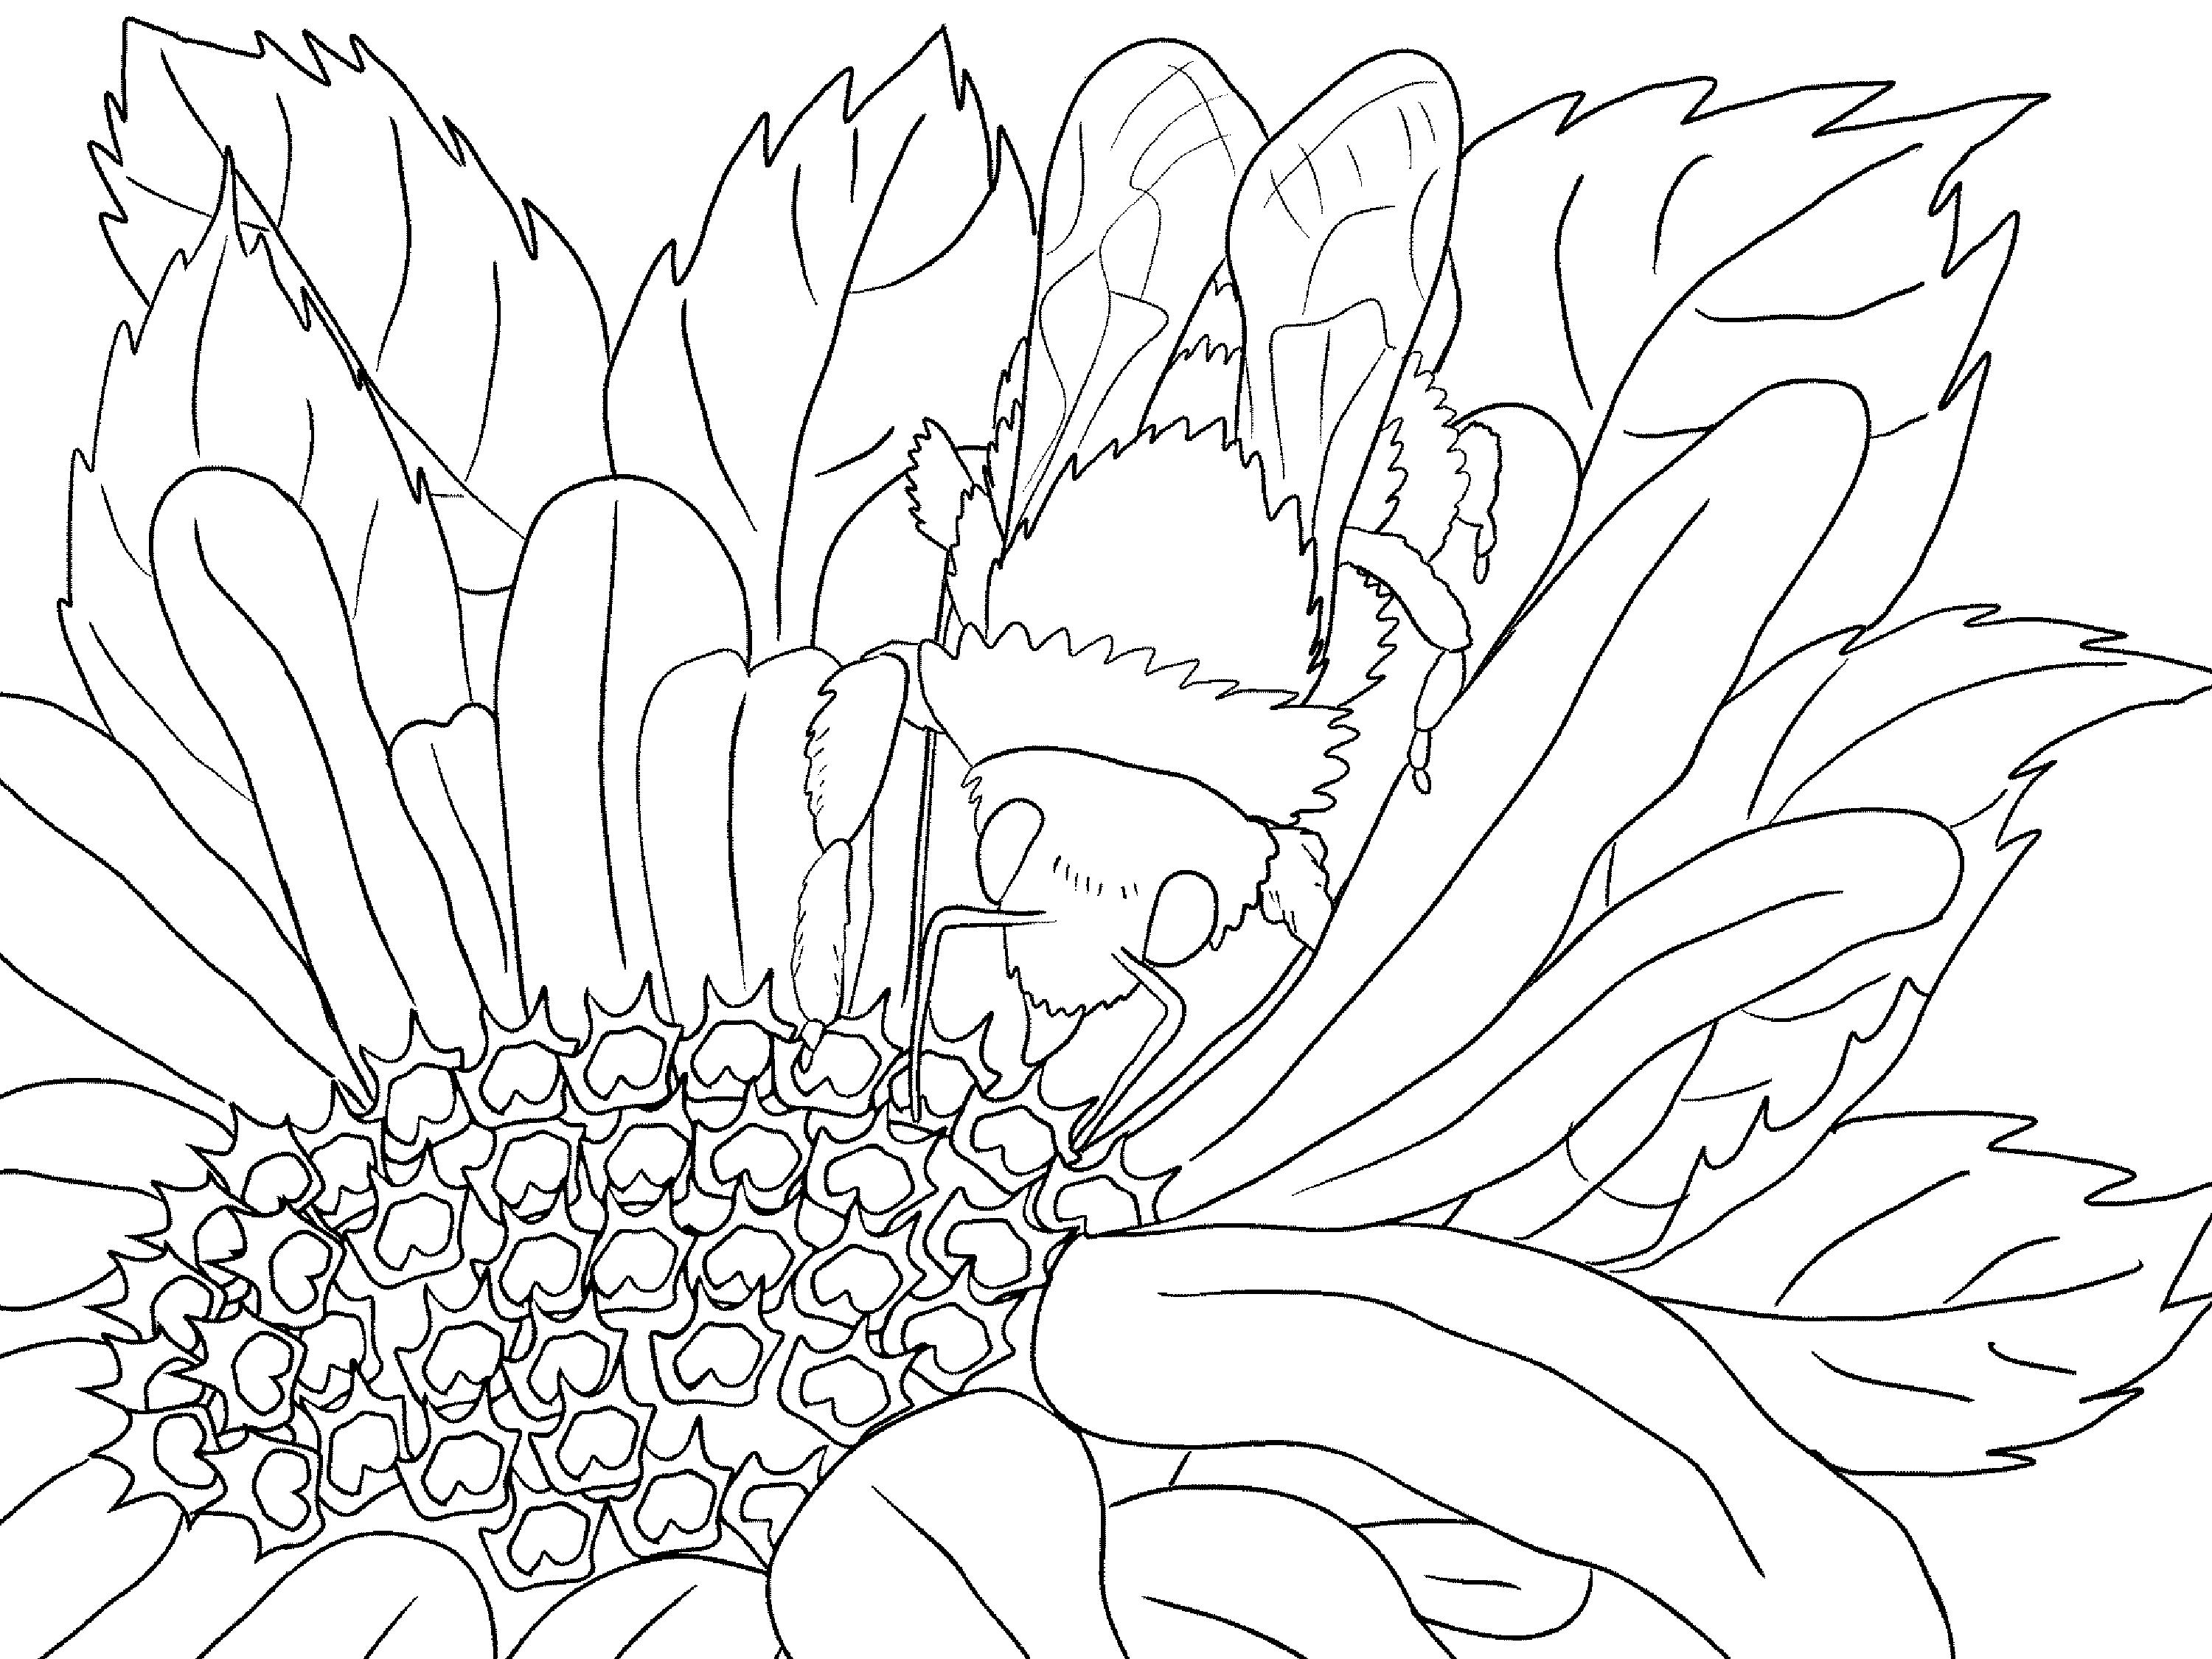 coloring for kids nature free nature scenes coloring pages download free clip art coloring nature kids for